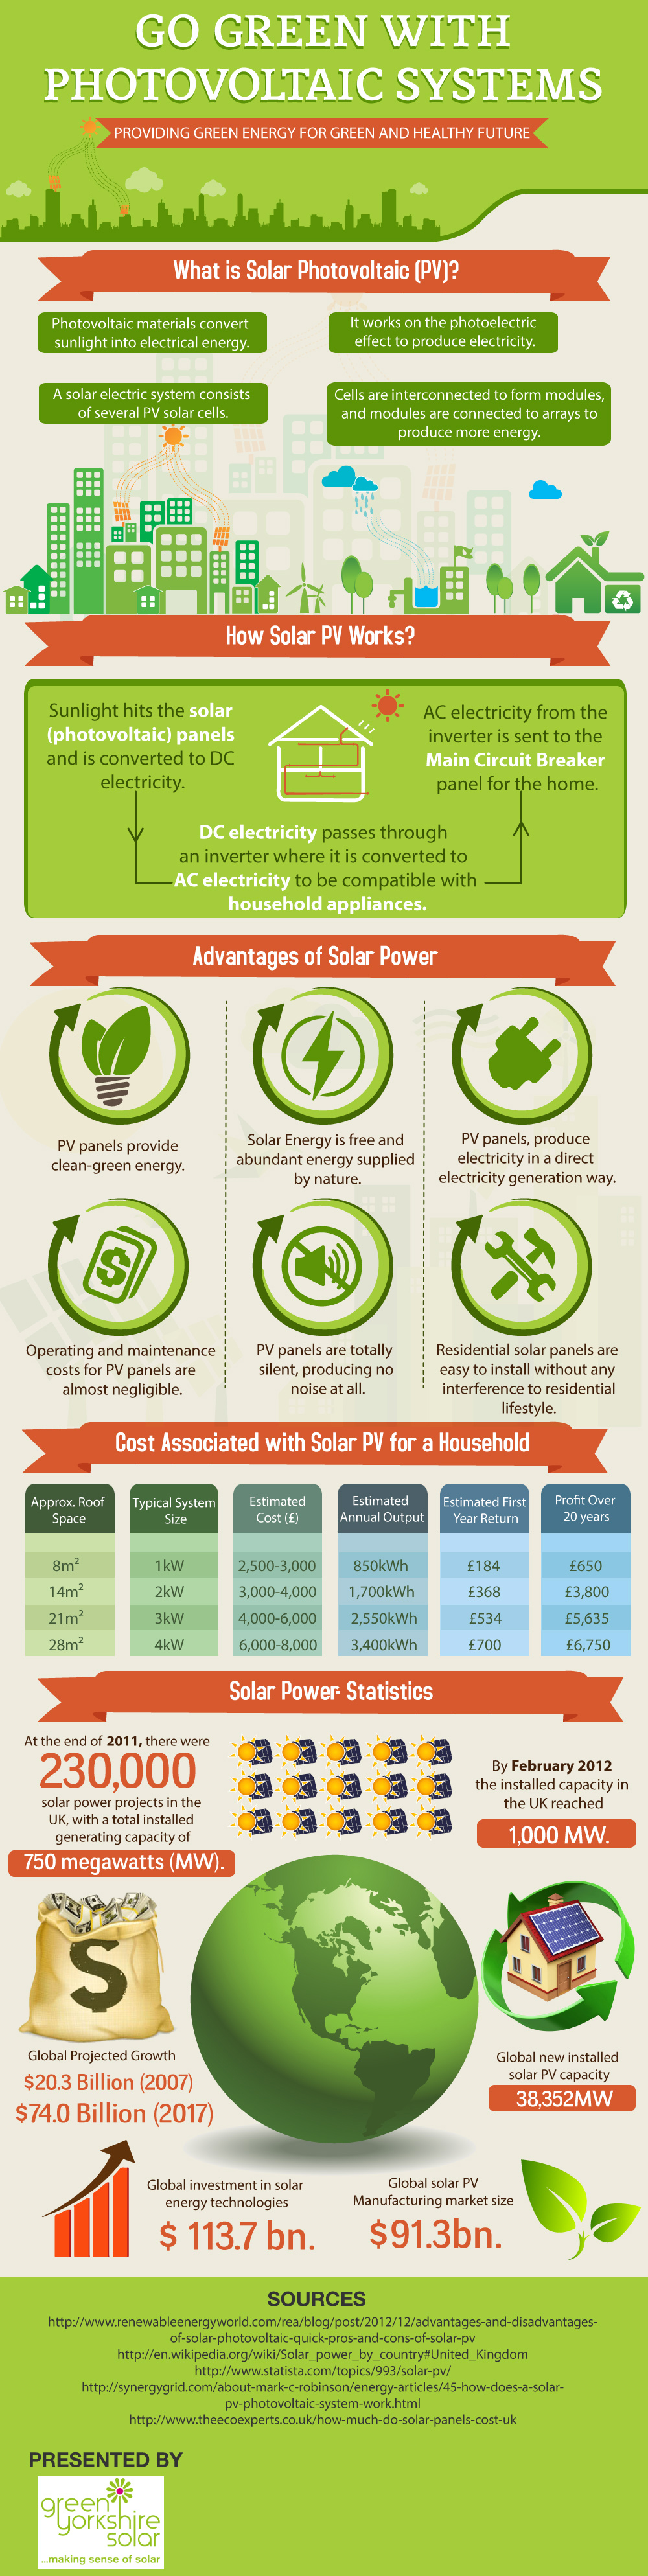 Go Green With Photovoltaic Systems